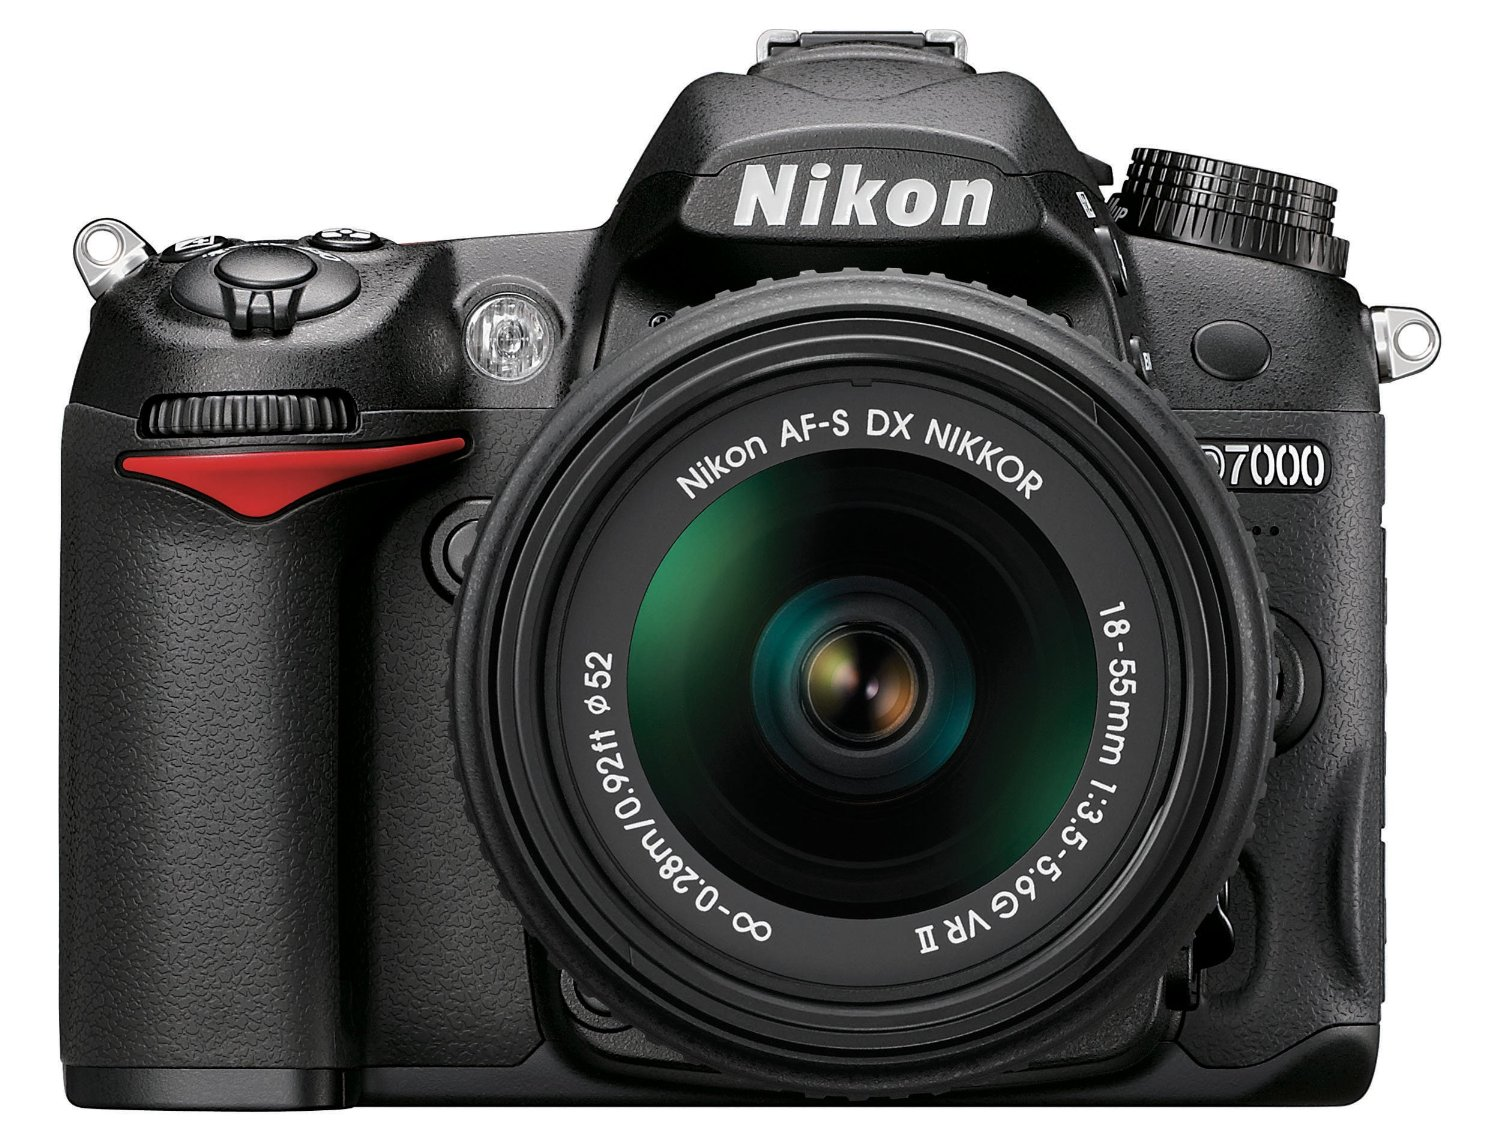 Nikon D7000 camera - gift ideas for modern moms from And Next Comes L